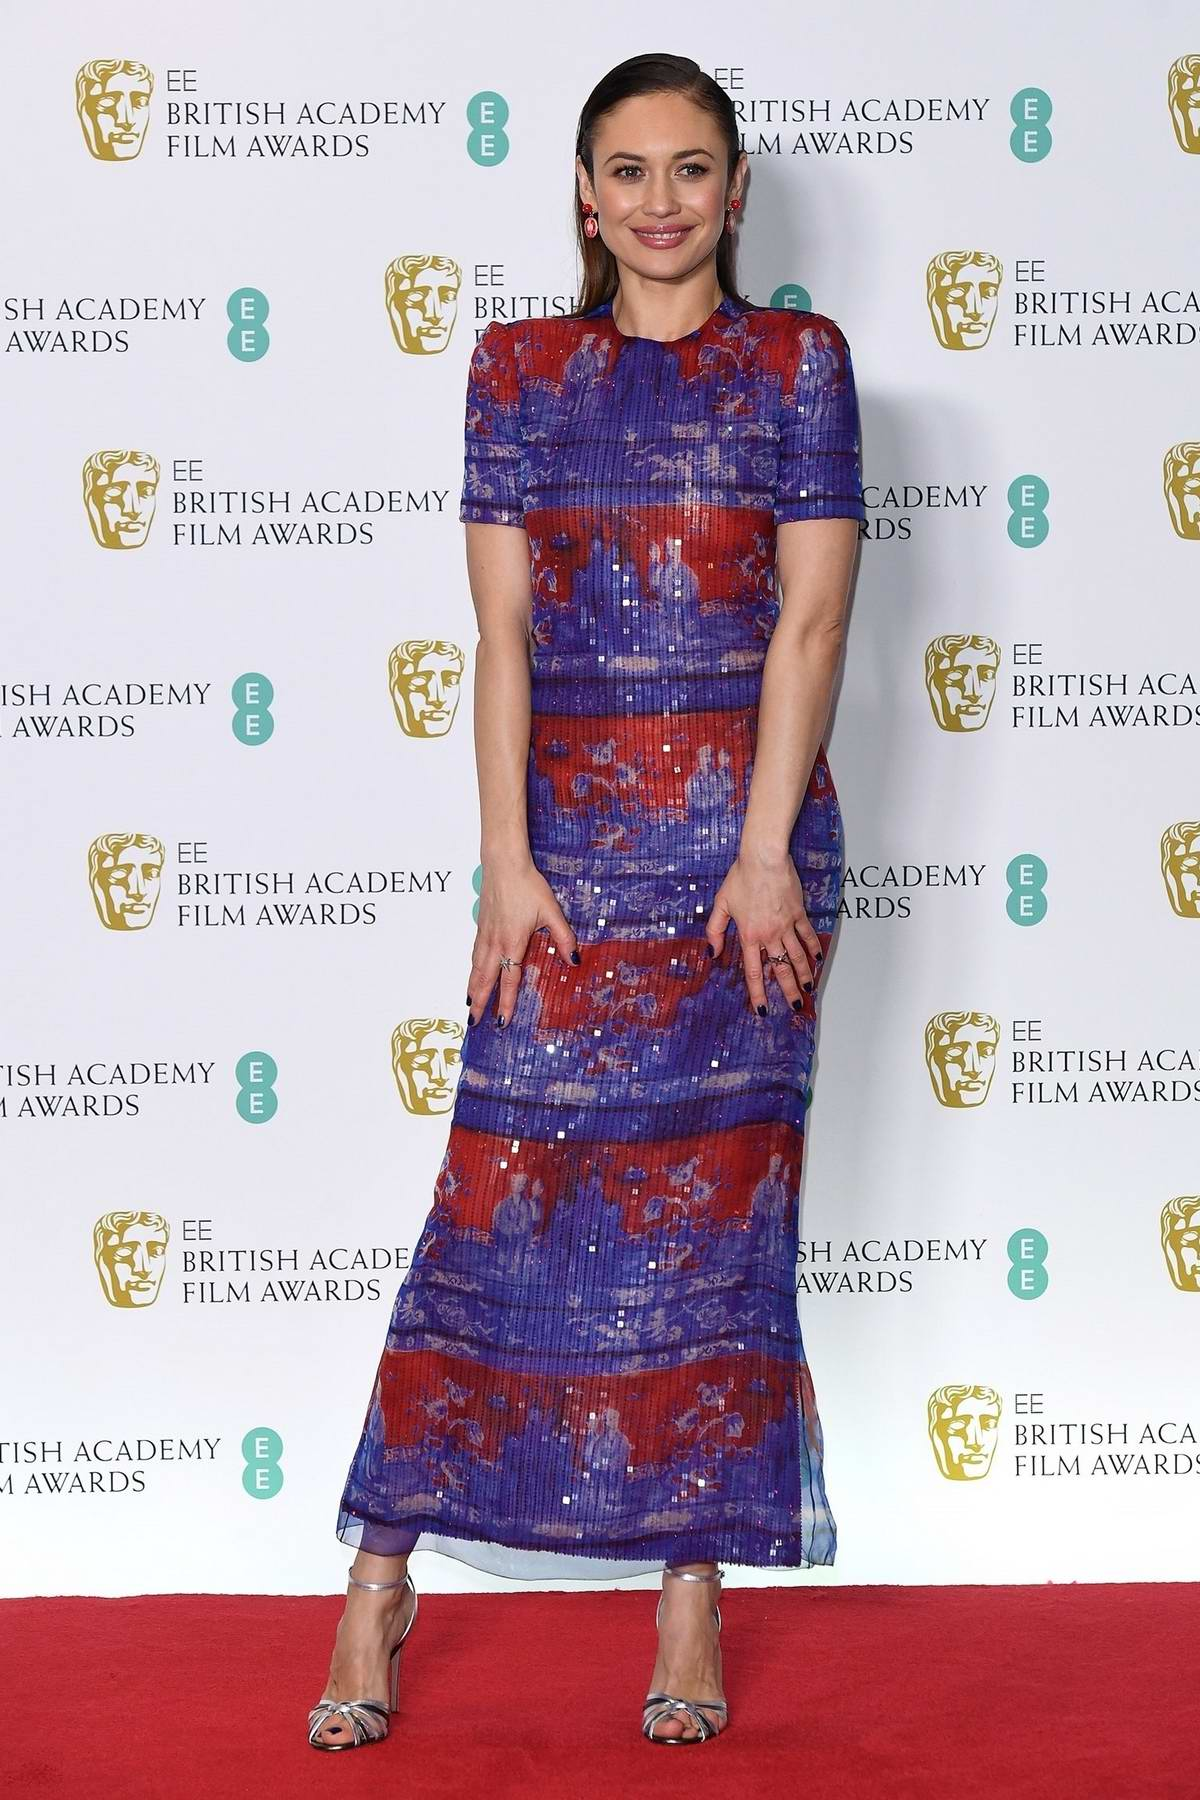 Olga Kurylenko attends the 72nd EE British Academy Film Awards (BAFTA 2019) at Royal Albert Hall in London, UK